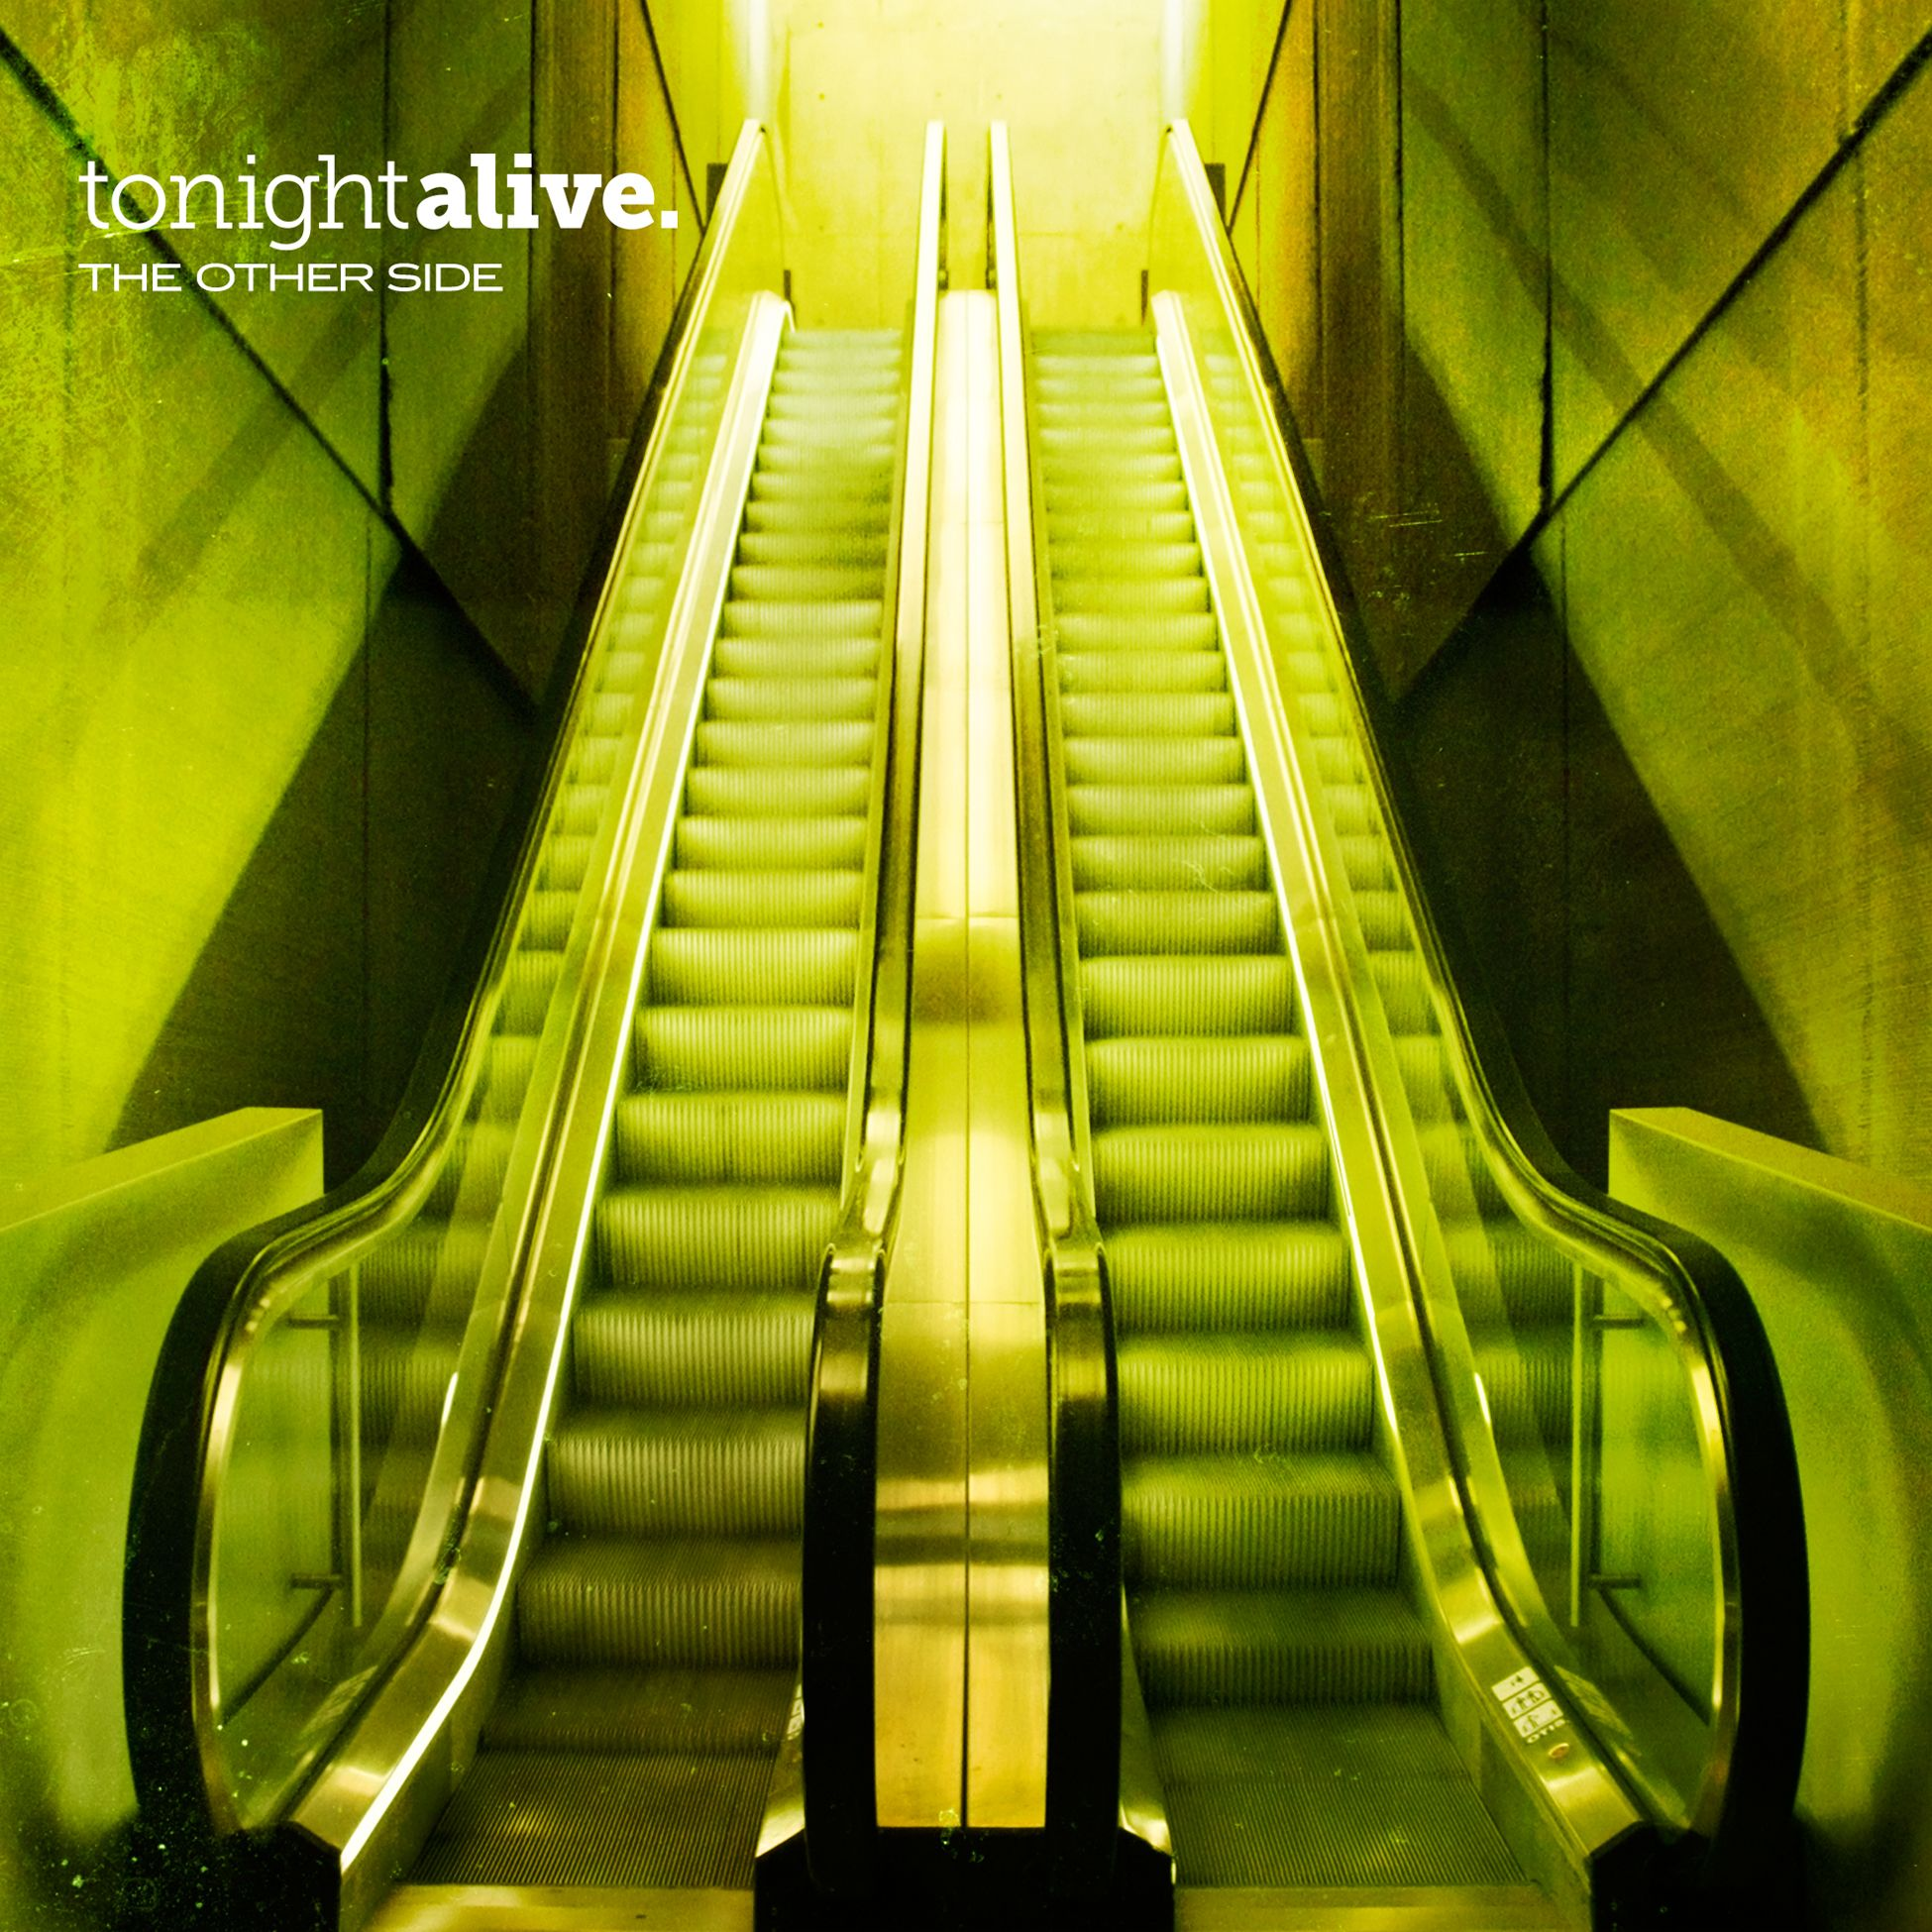 Tonight Alive - The Other Side album cover